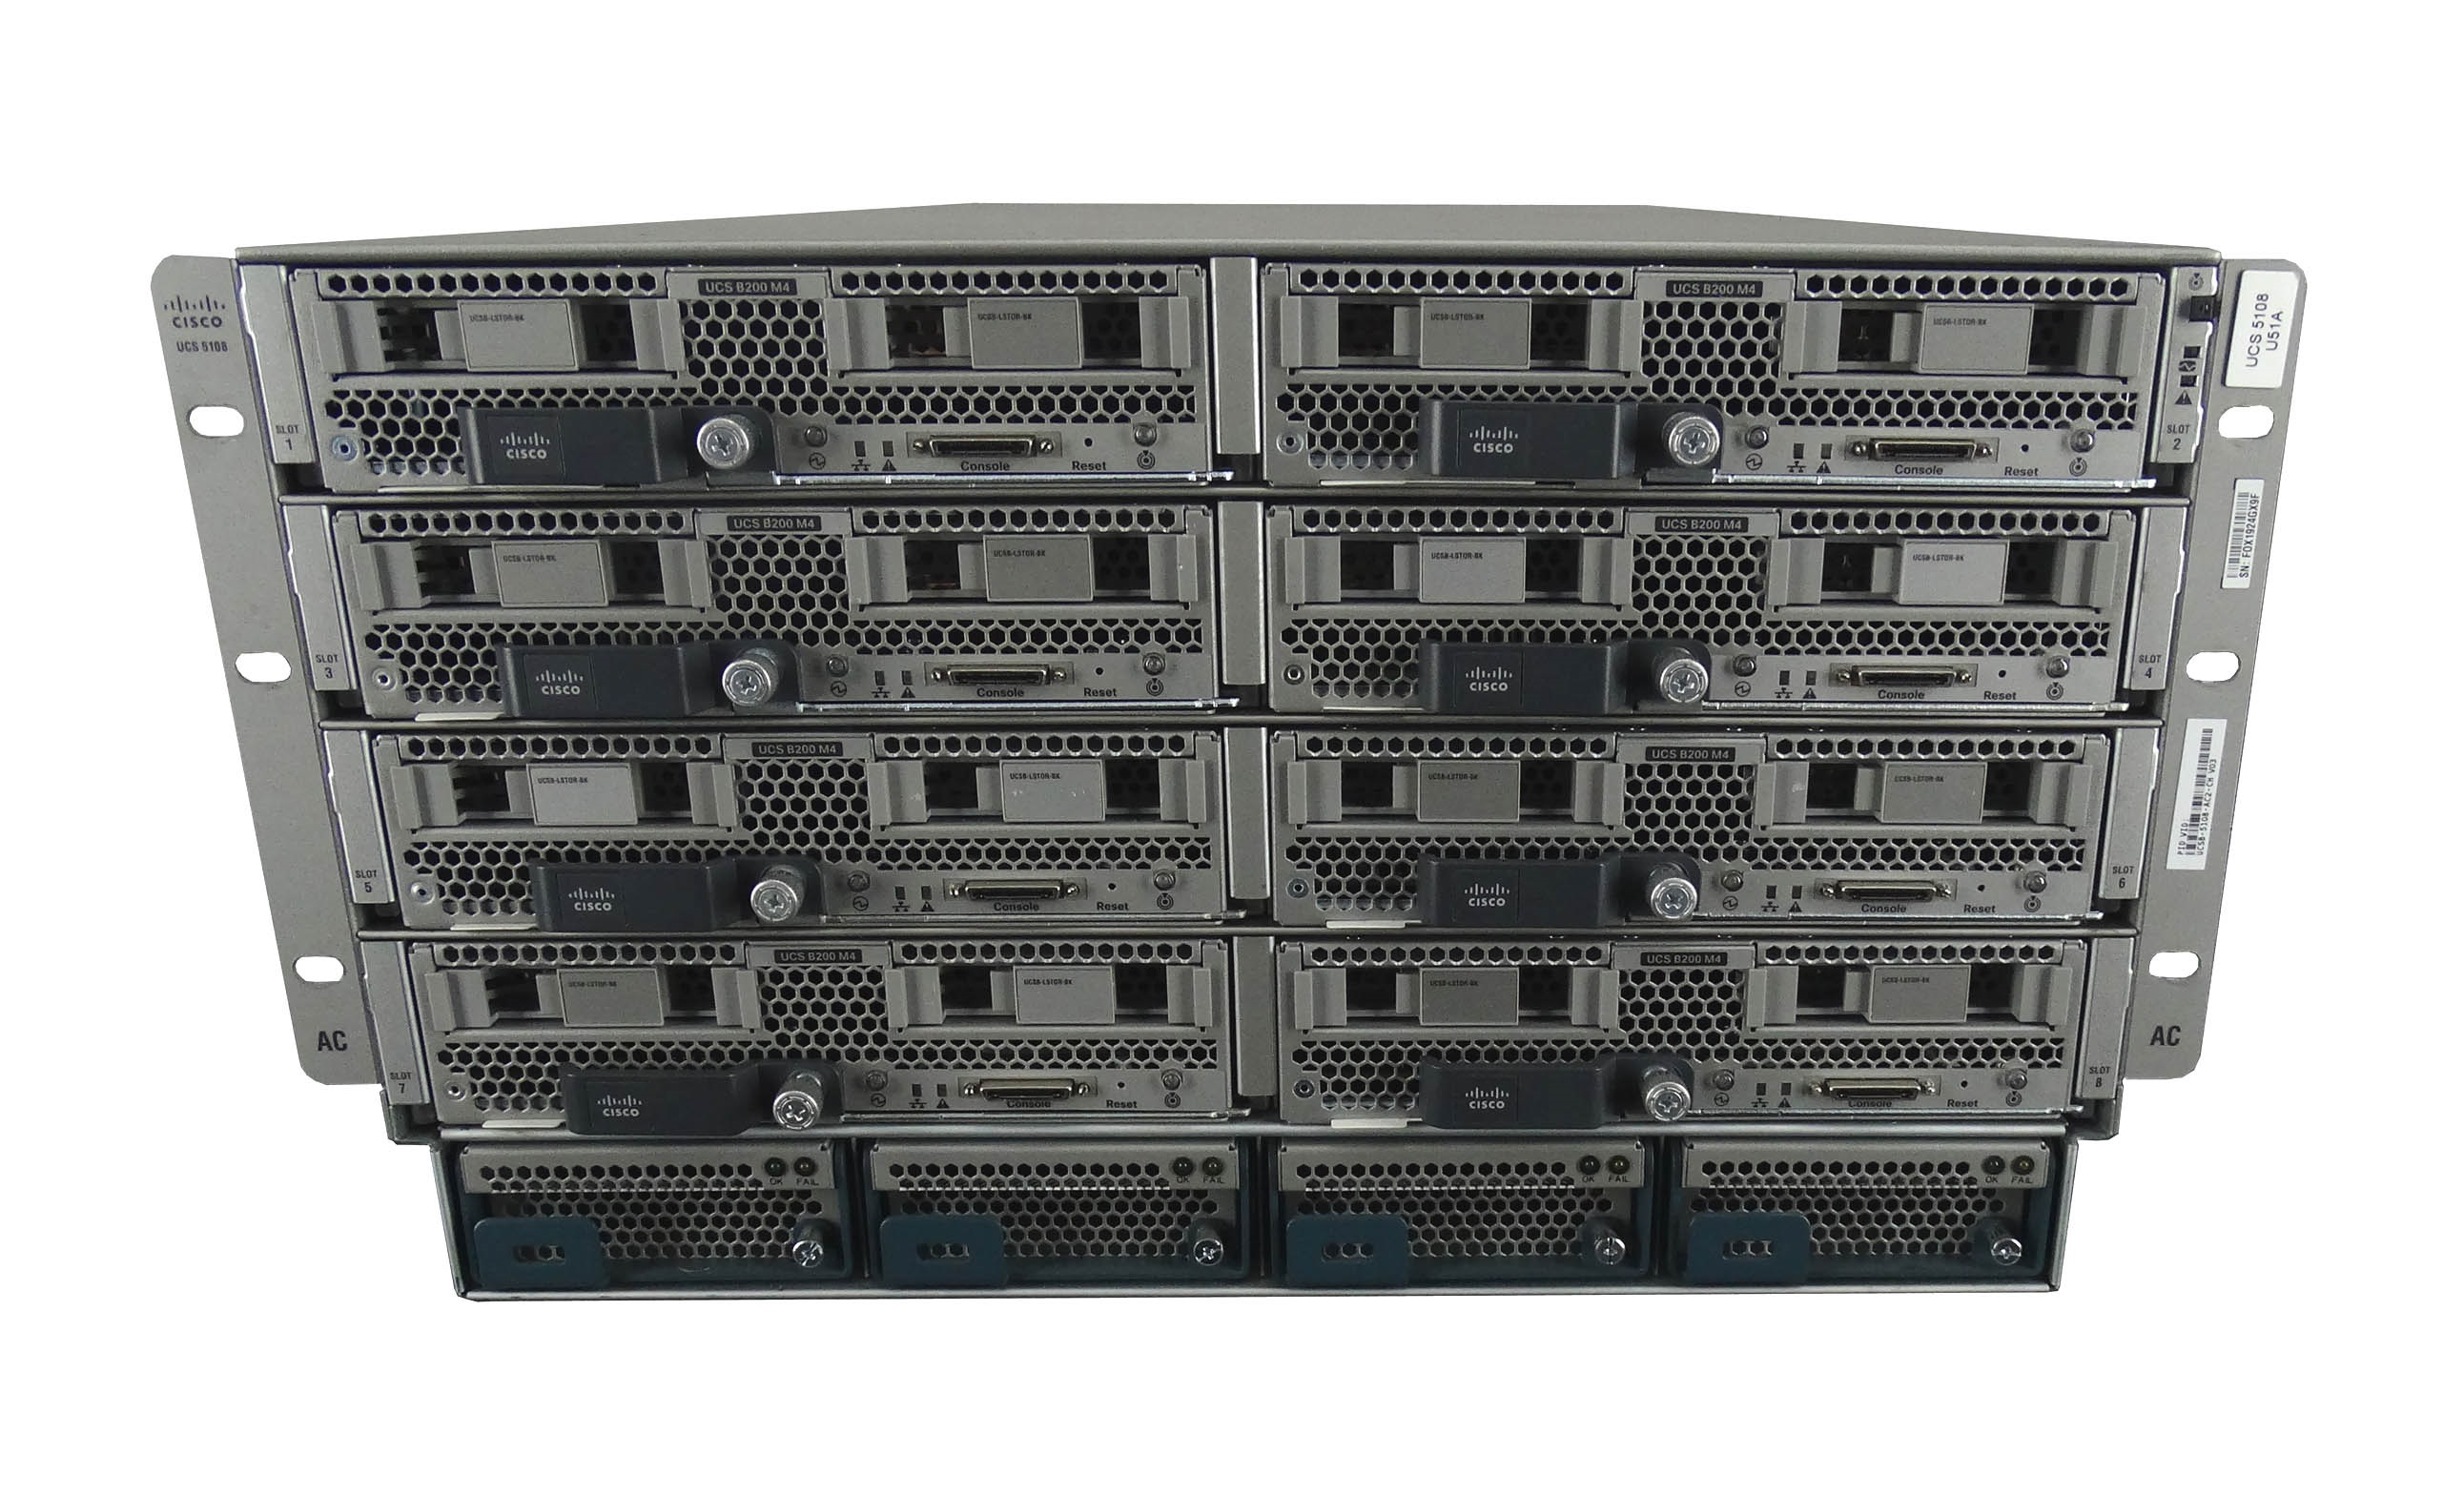 Cisco UCS 5108 Chassis with 8x B200 M4 Blade Server